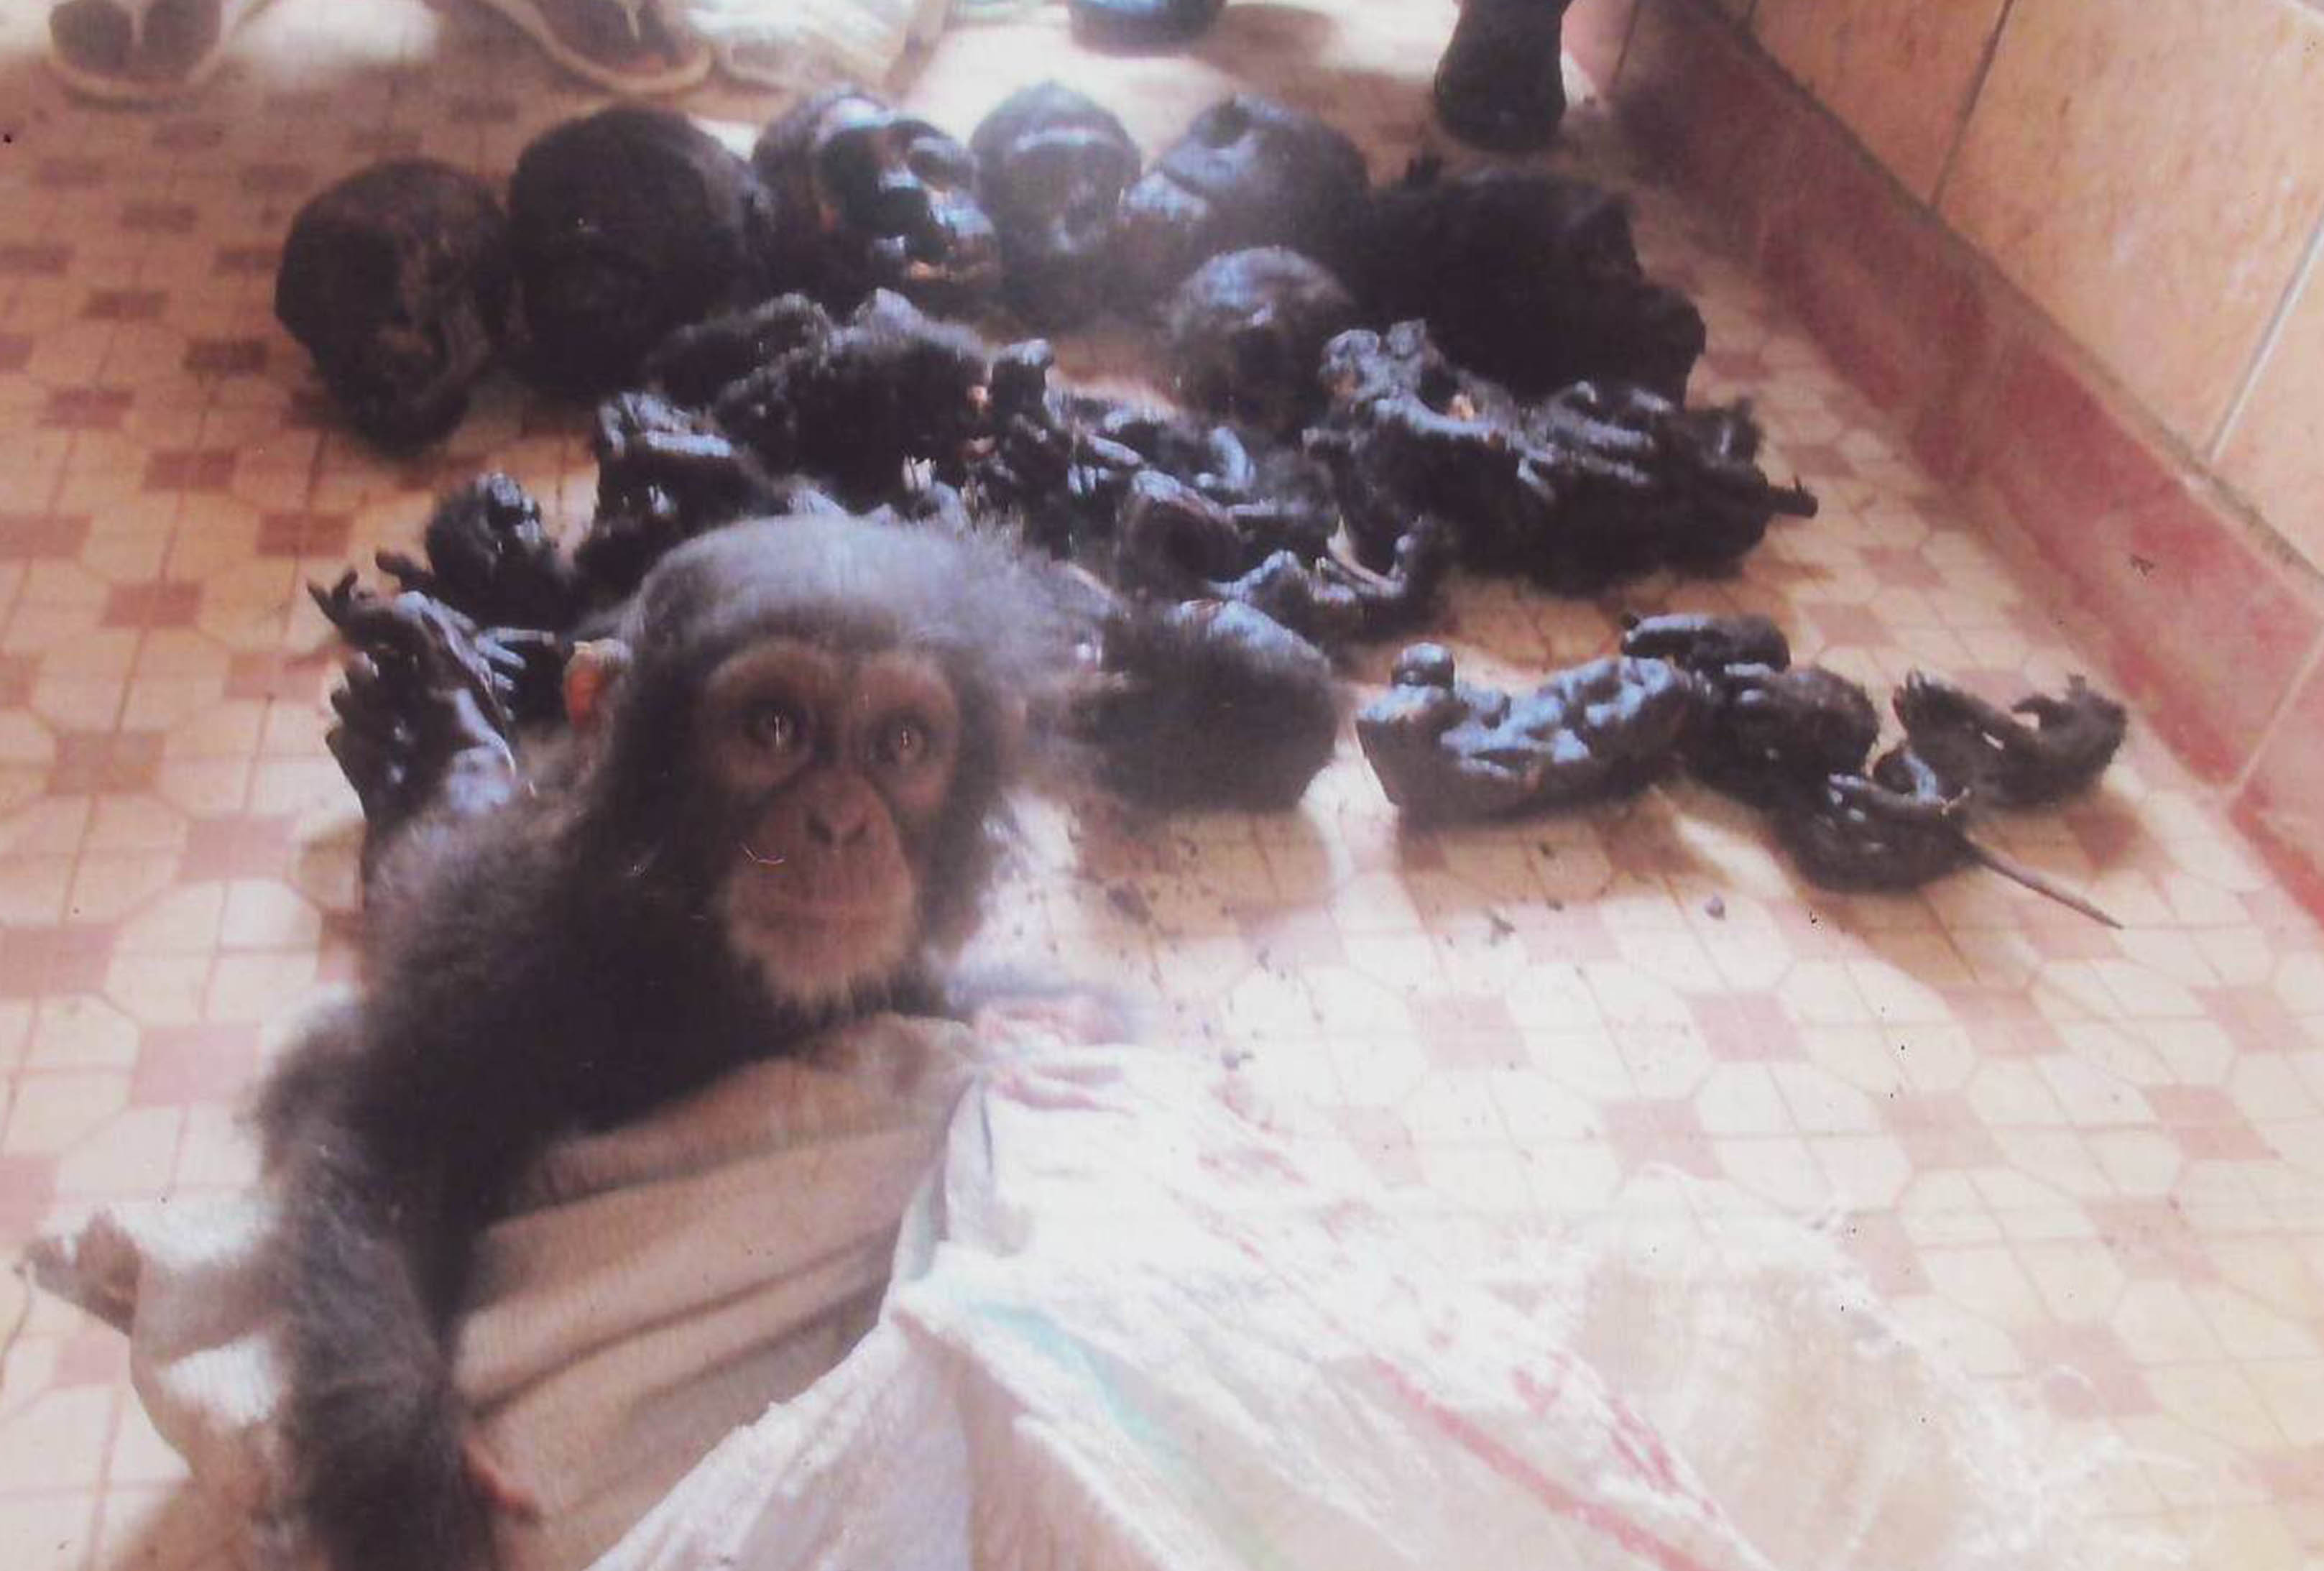 Heart Breaking Moment Baby Chimp Was Rescued Discovered